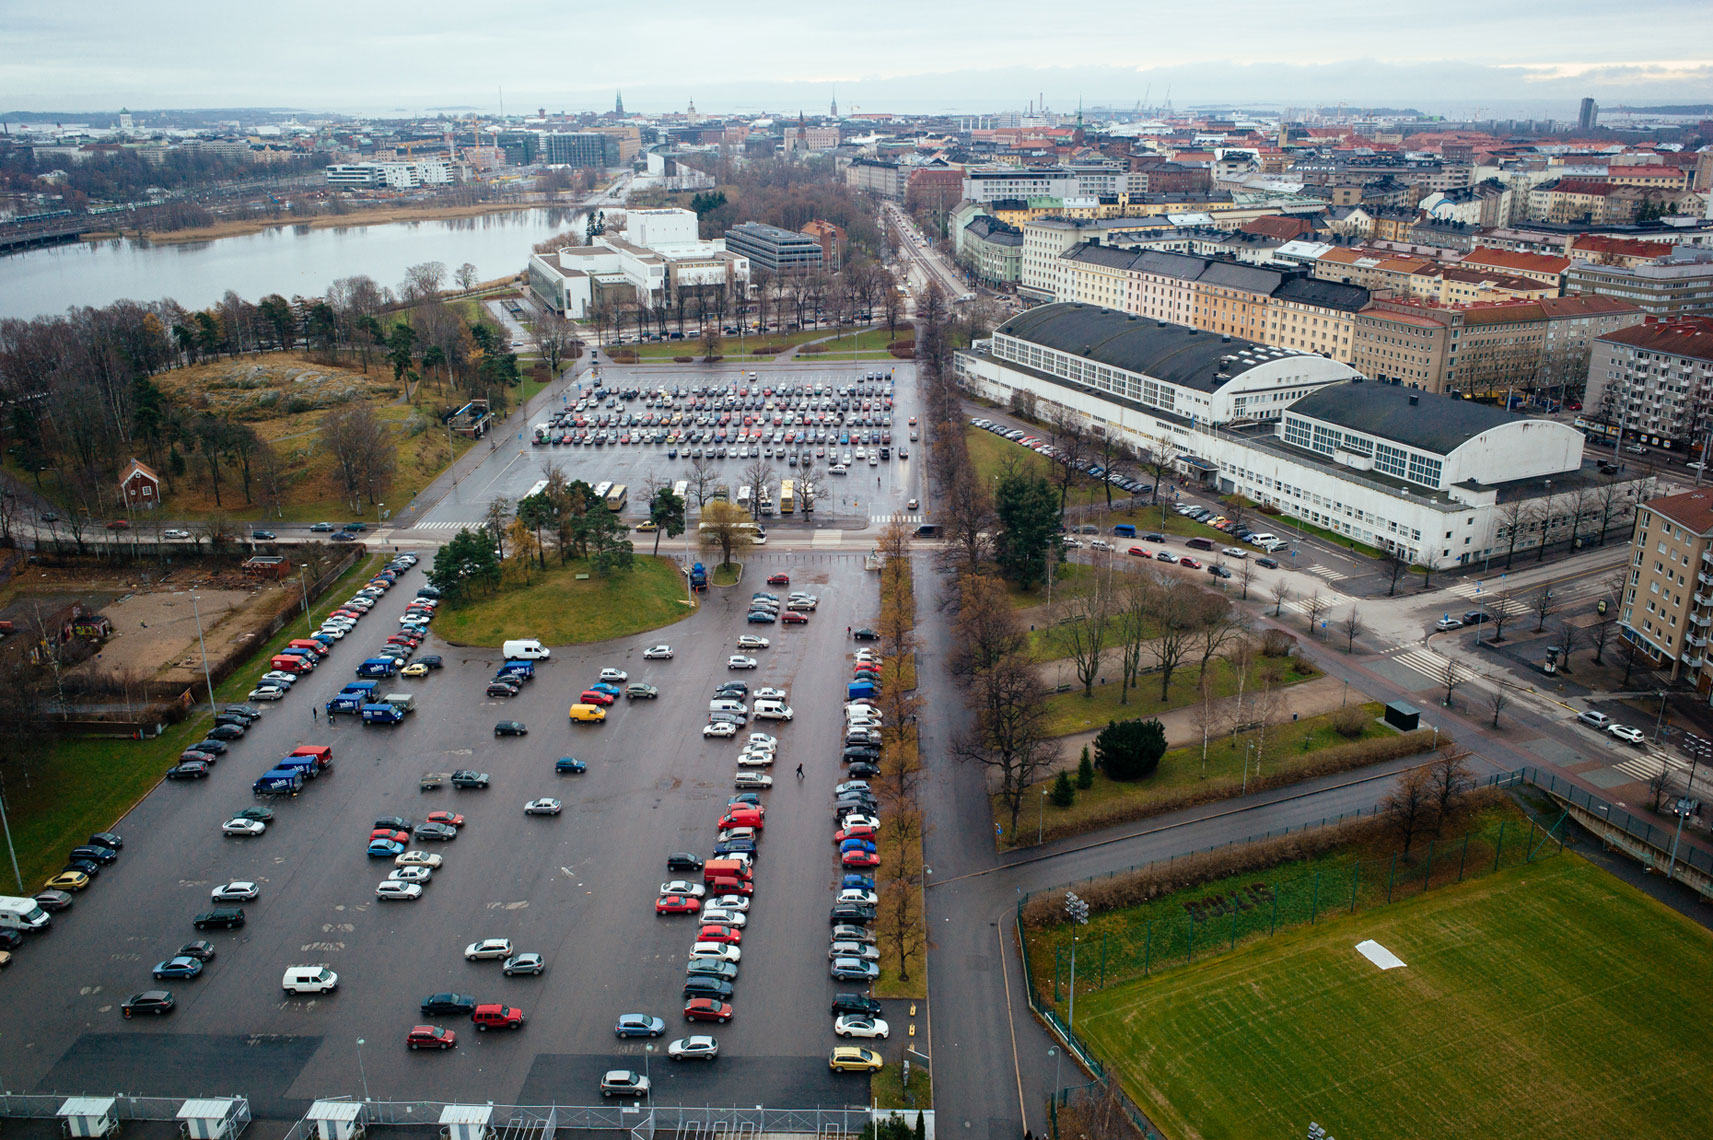 jon pack, photographer | the olympic city | helsinki, finland | parking lot | stadium